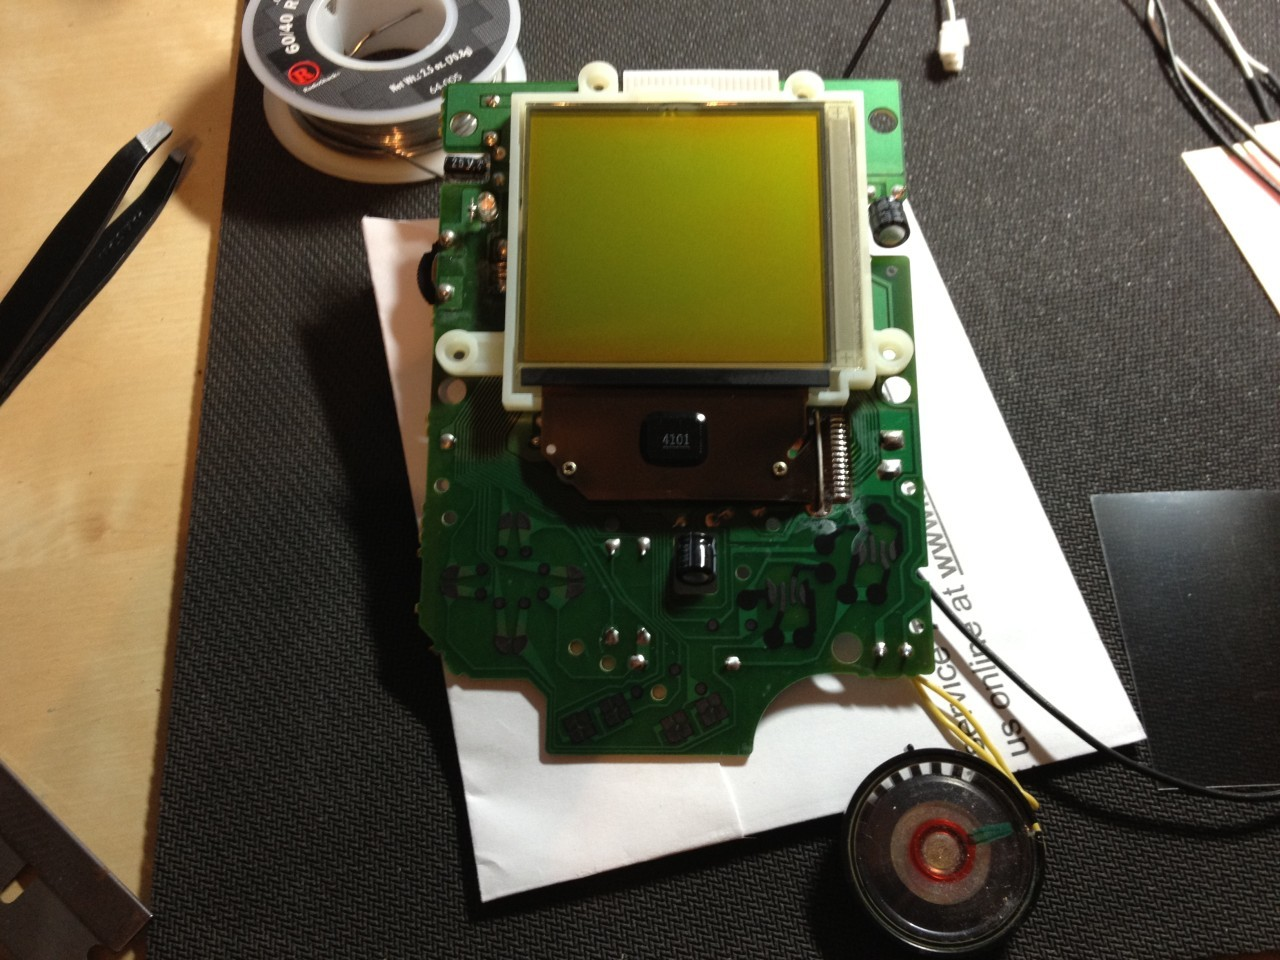 The front circuit board removed, with speaker